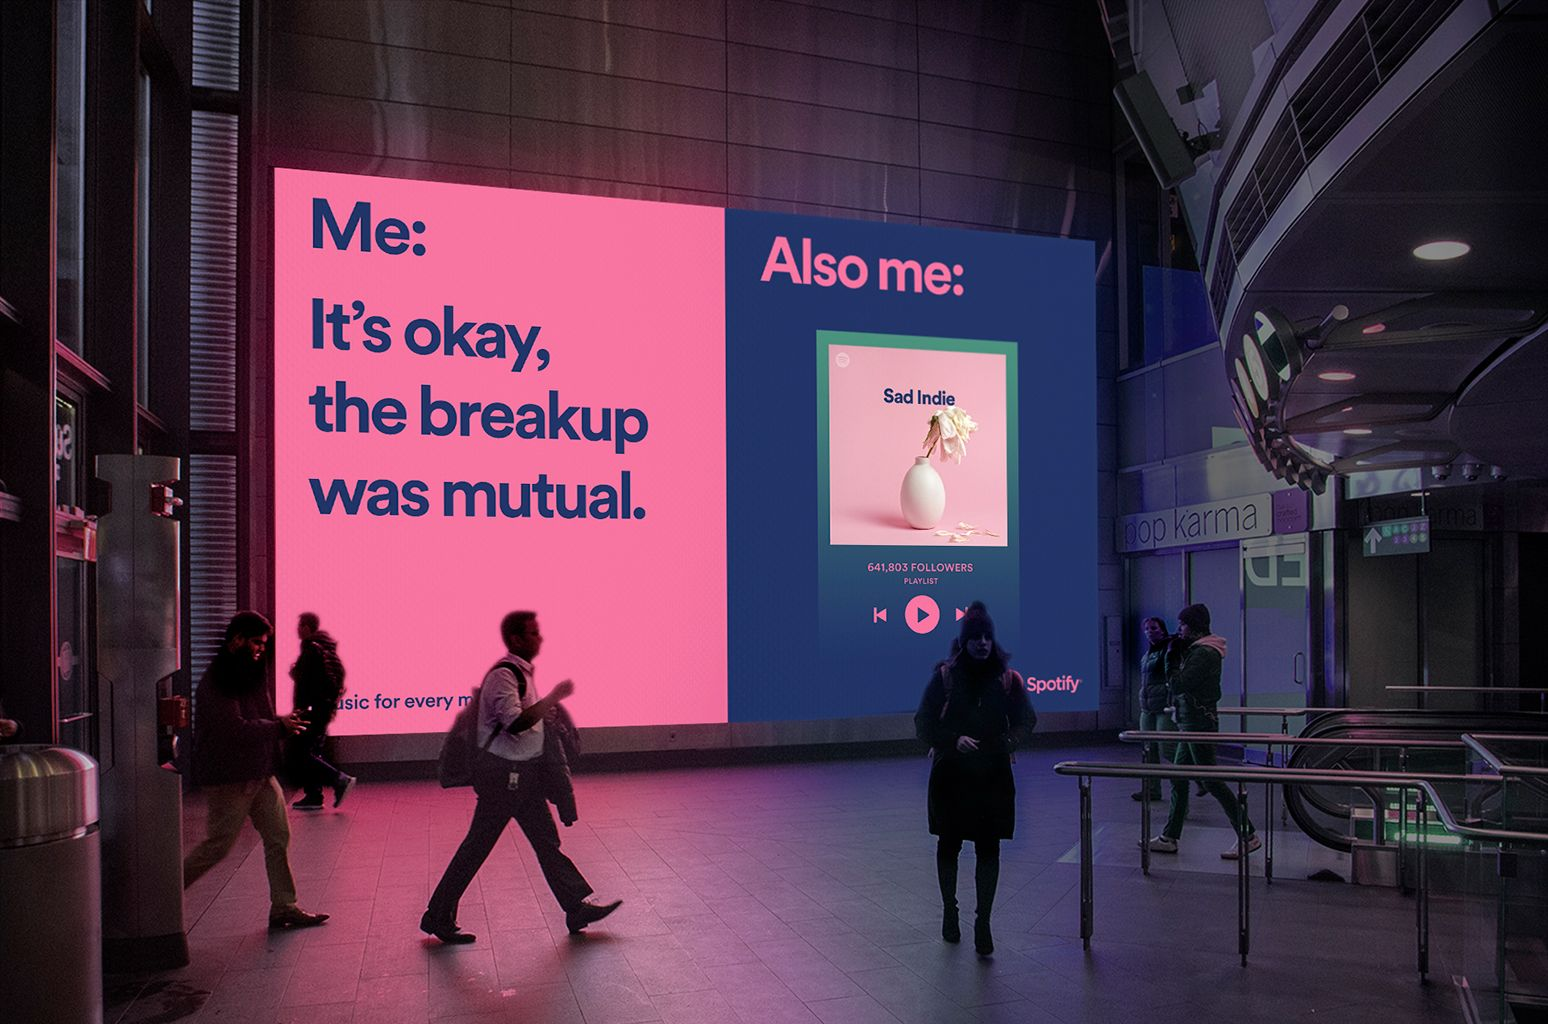 Here's Spotify's New MemeInspired Ad Campaign Brand